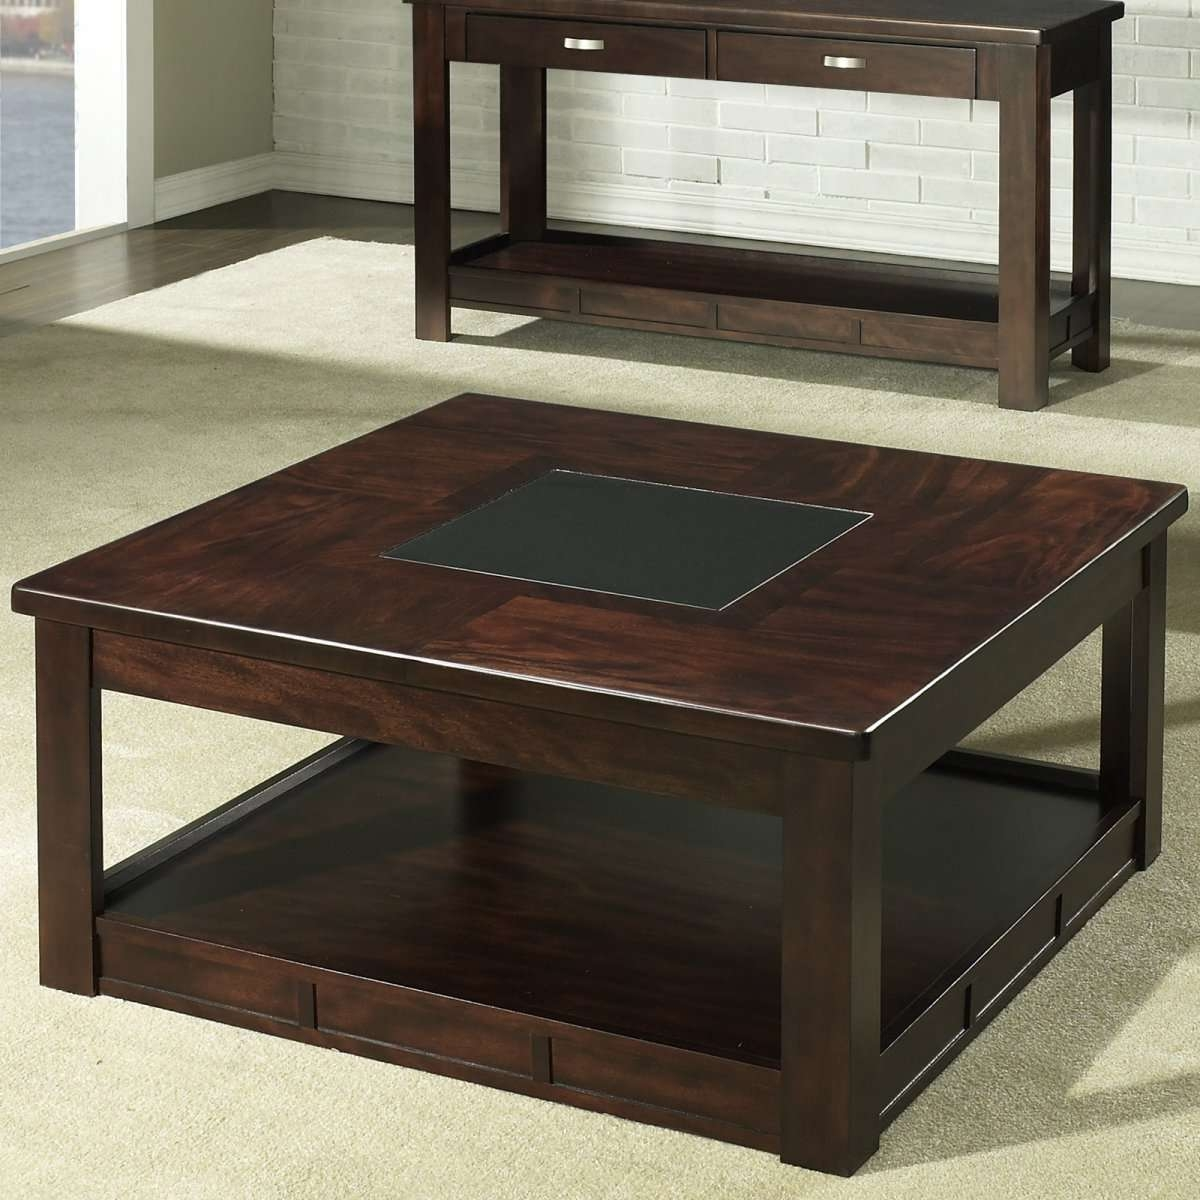 Coffee Tables : Coffee Table Square Wood With Storage Tables Glass Regarding Current Square Wooden Coffee Tables (View 6 of 20)